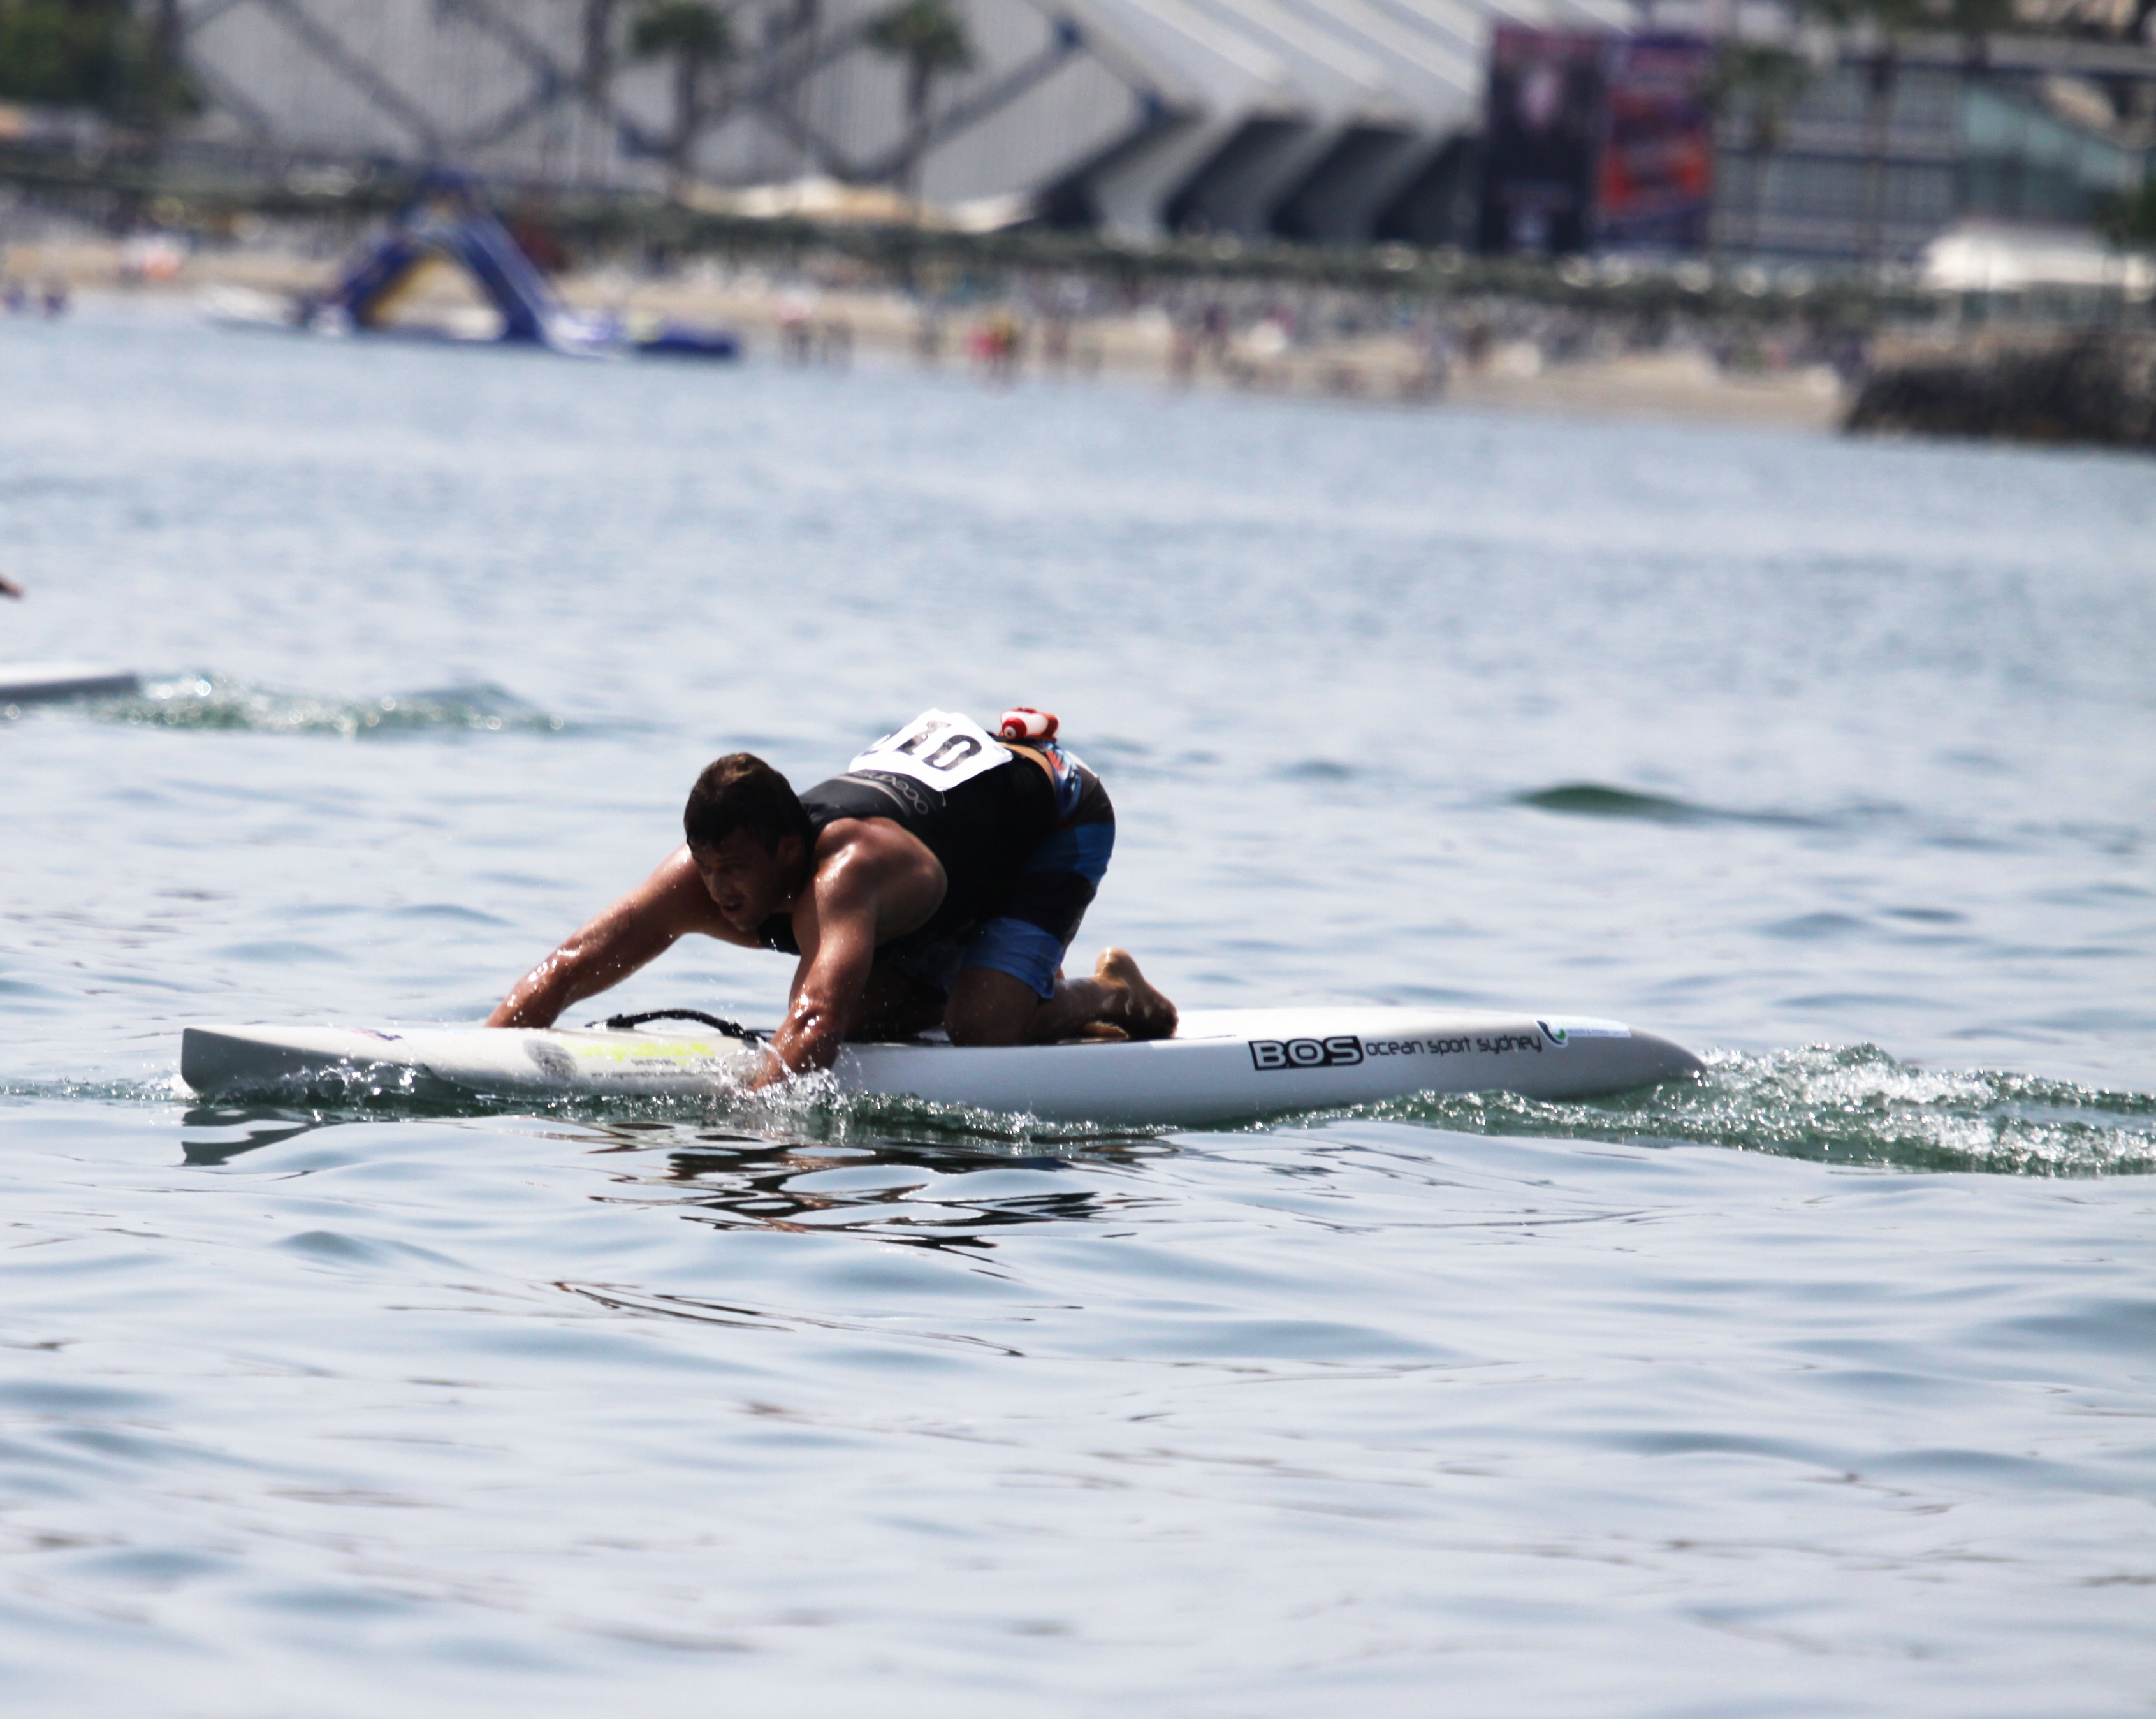 ISA World Stand Up Championships &#8211; Men&#8217;s Short Paddleboard Race Results